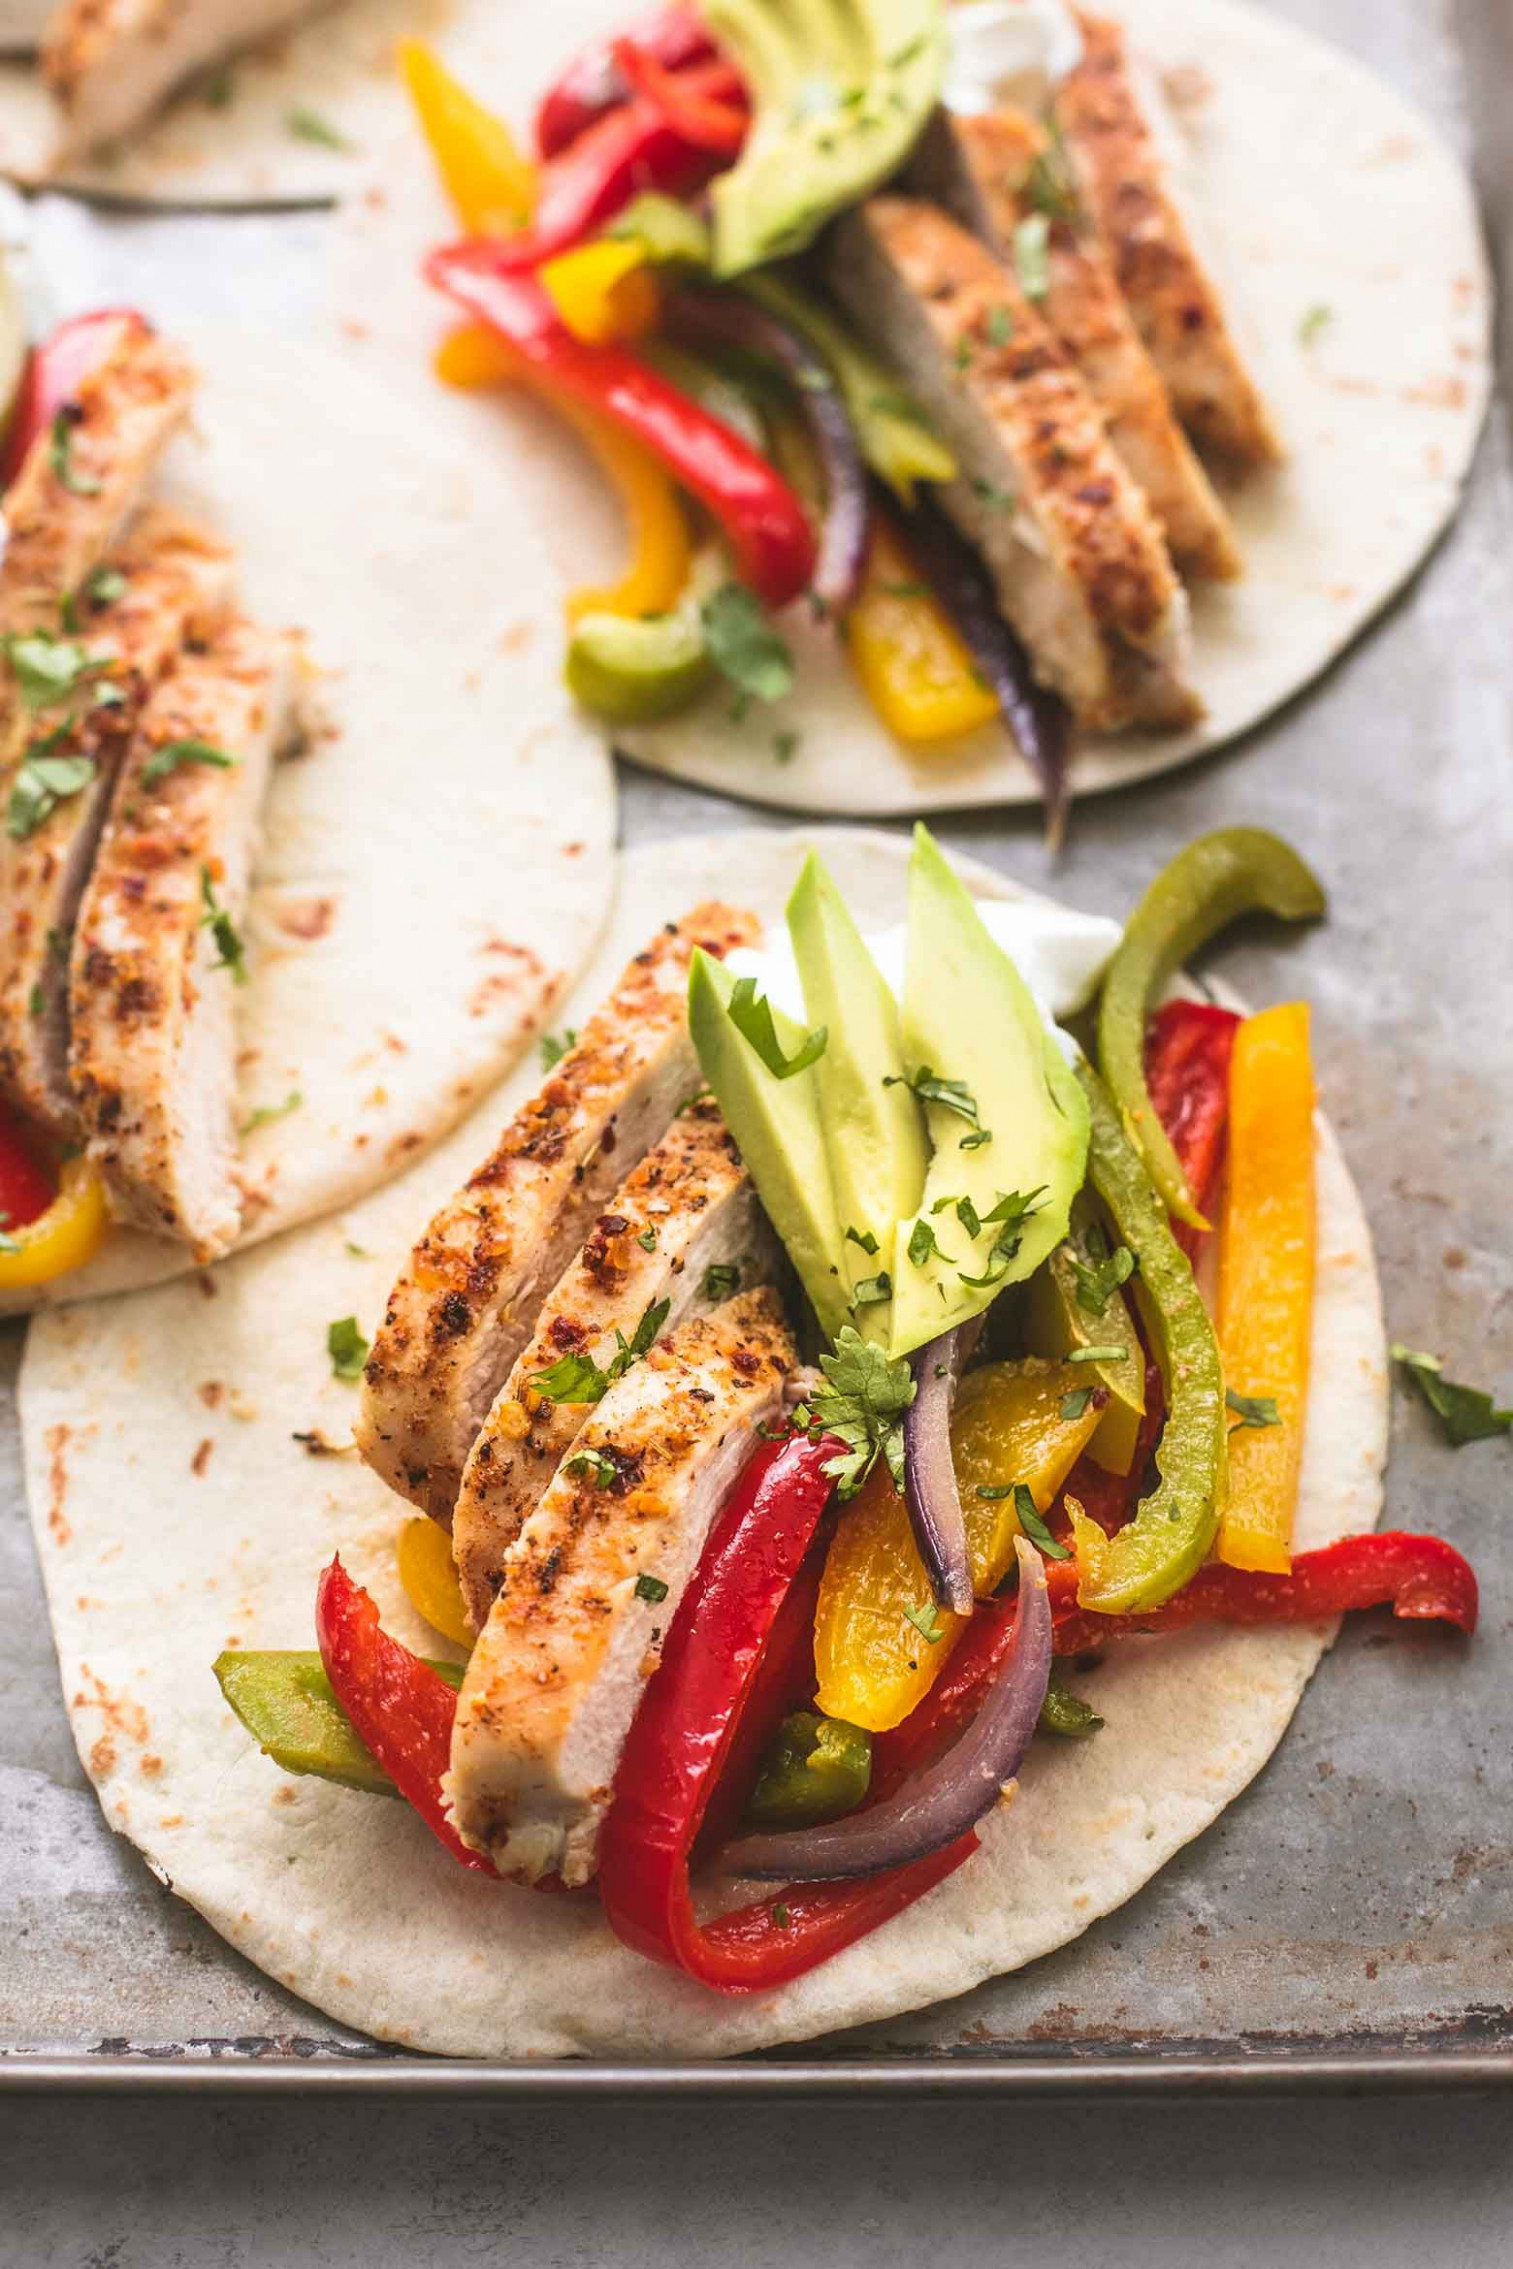 13 Easy Healthy Dinner Recipes - Best Healthy Meal Ideas for ..